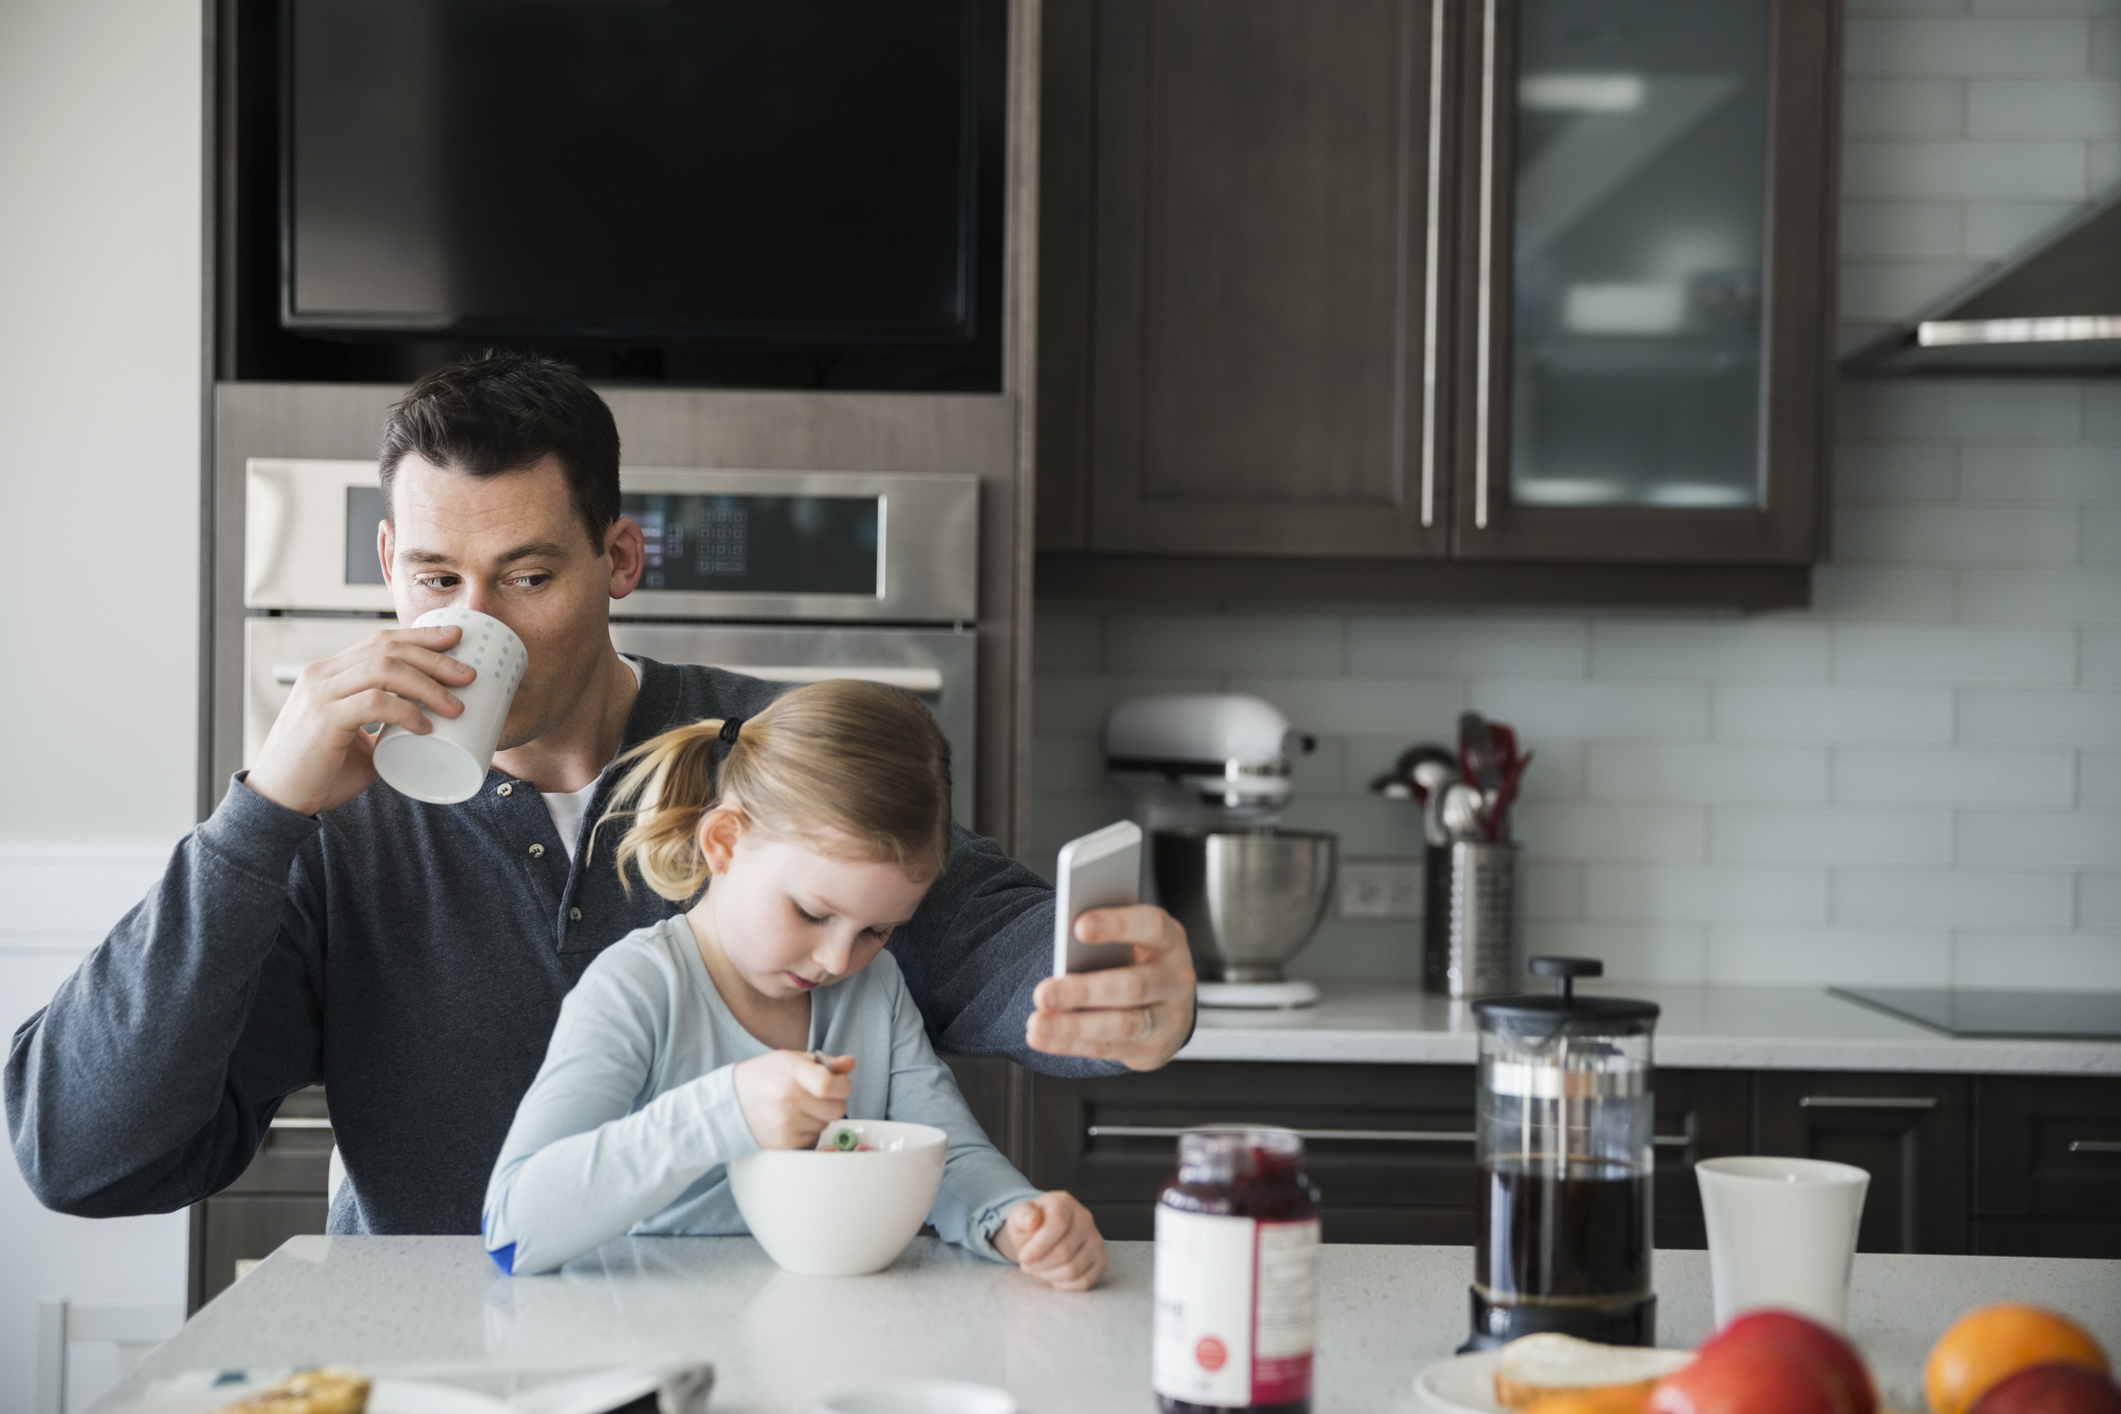 Parenting While Distracted